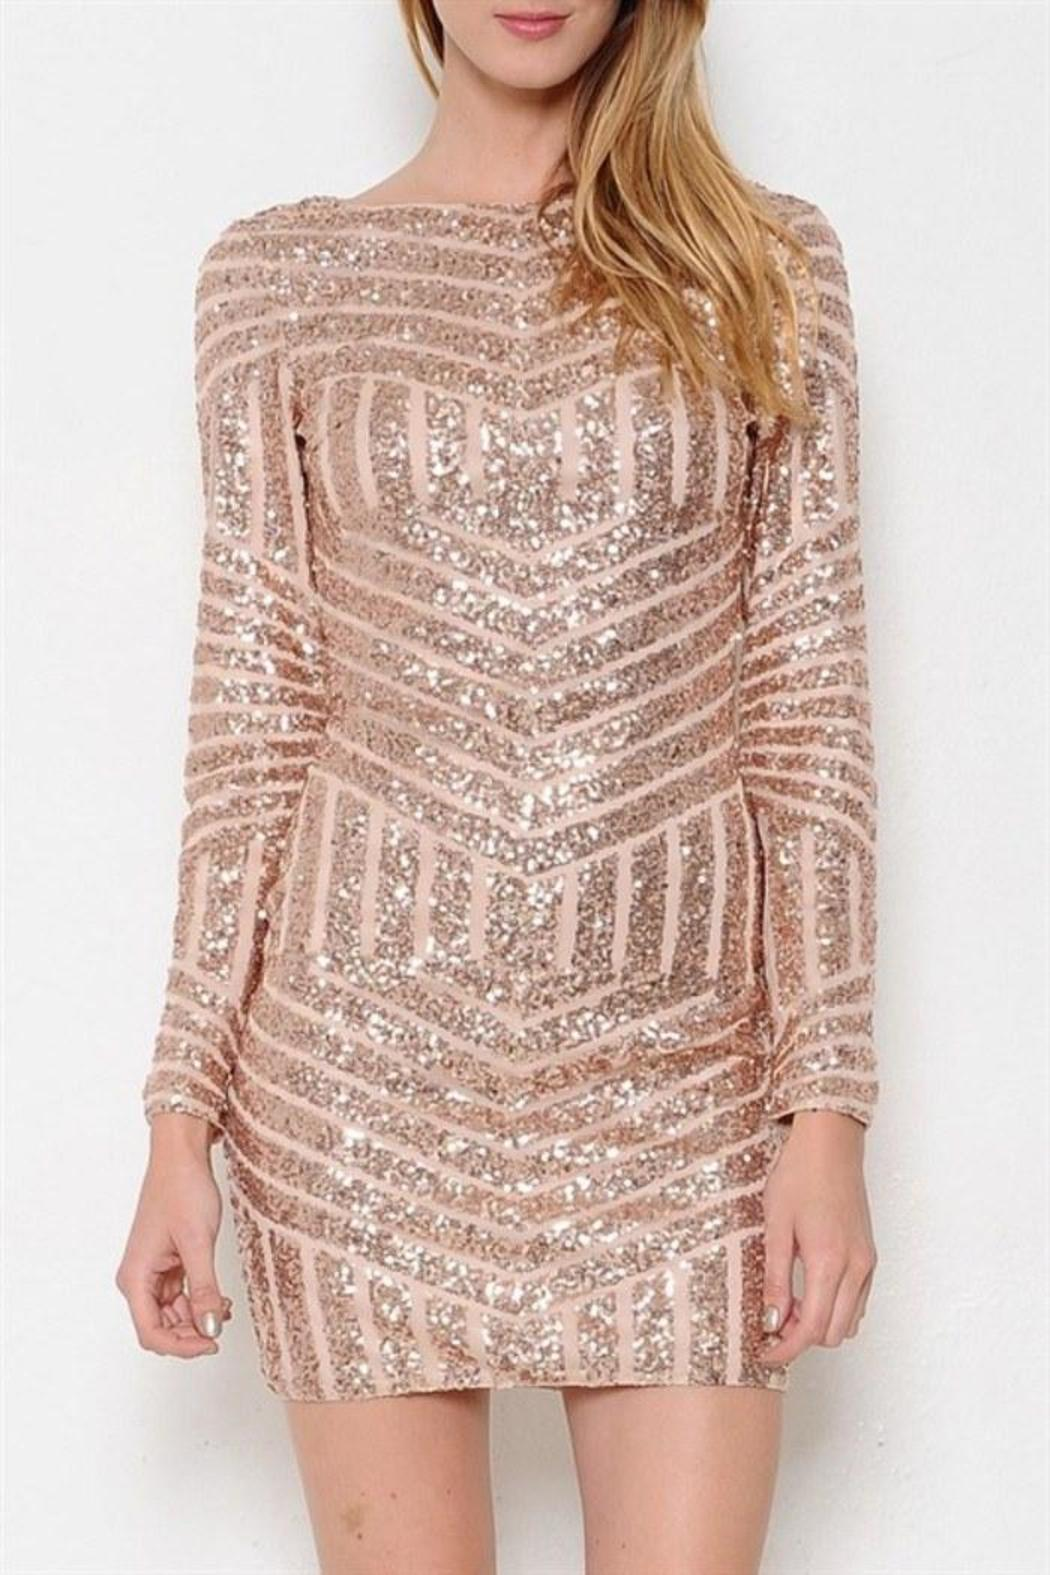 rose gold sequin dress from laredo by dollz boutique shoptiques. Black Bedroom Furniture Sets. Home Design Ideas